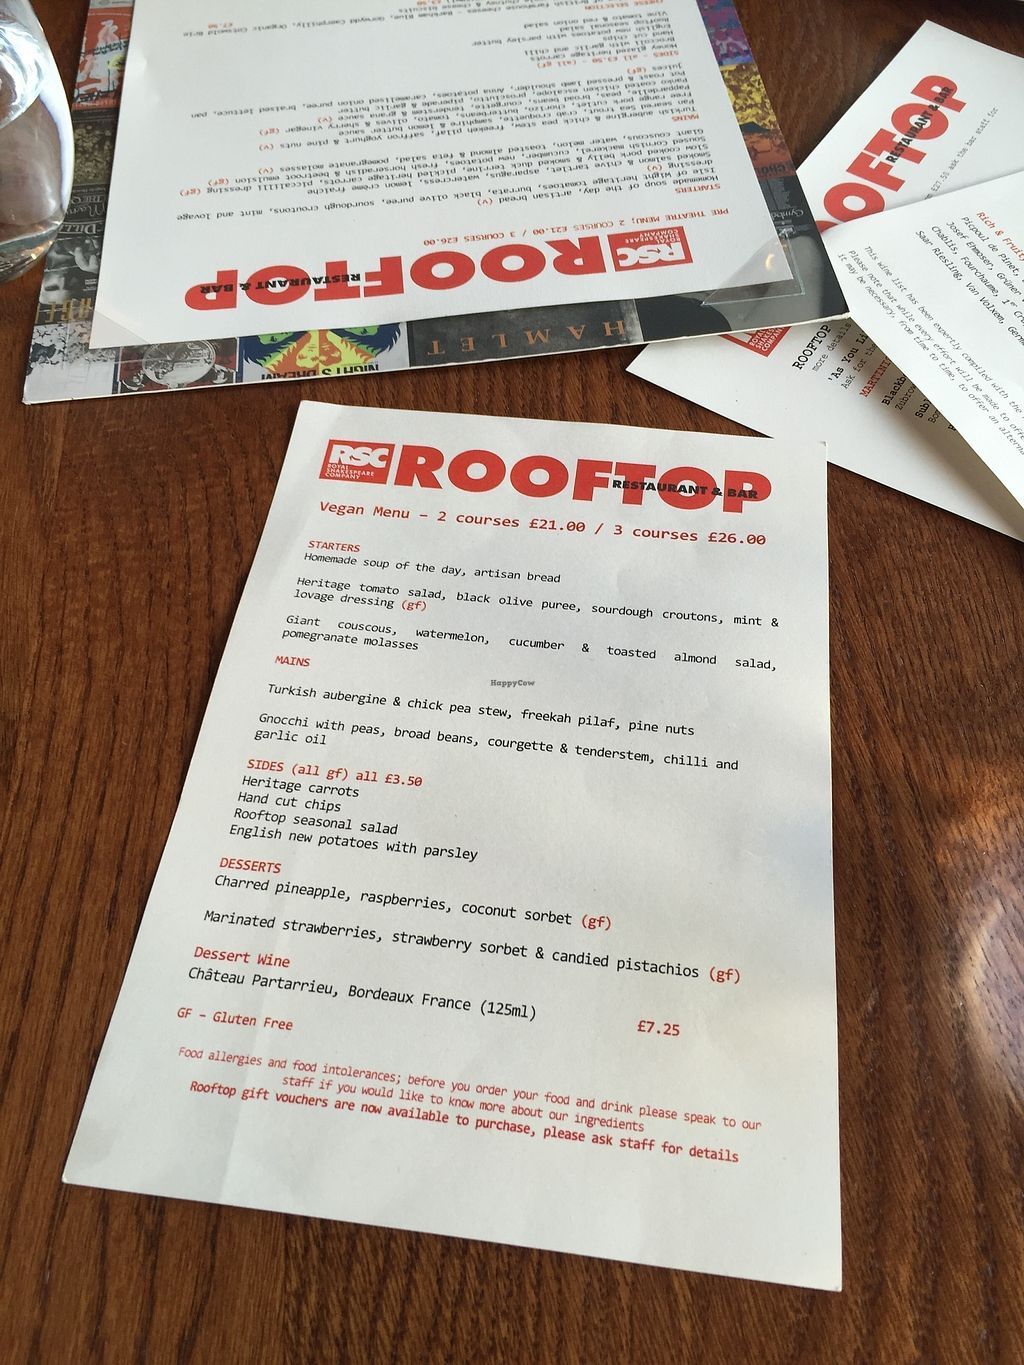 """Photo of Rooftop Restaurant and Bar - Royal Shakespeare Company  by <a href=""""/members/profile/healaing"""">healaing</a> <br/>Menu <br/> July 31, 2017  - <a href='/contact/abuse/image/97273/287030'>Report</a>"""